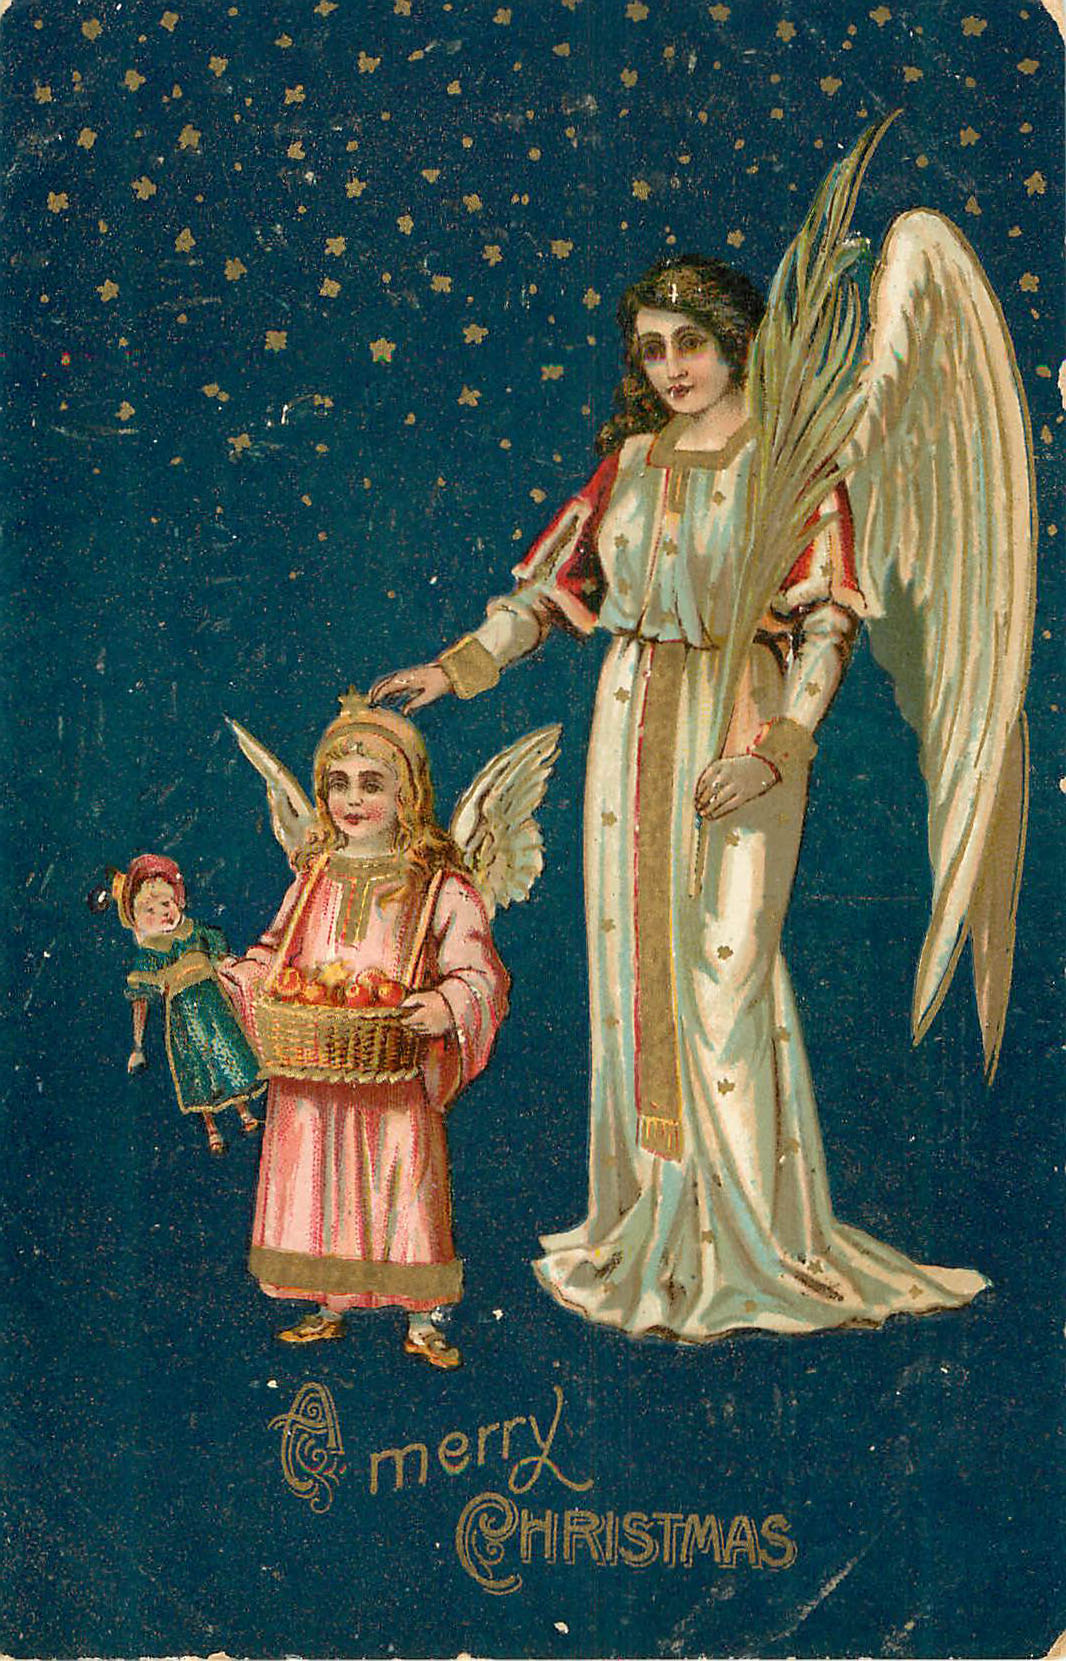 Merry Christmas - Angel with child and doll